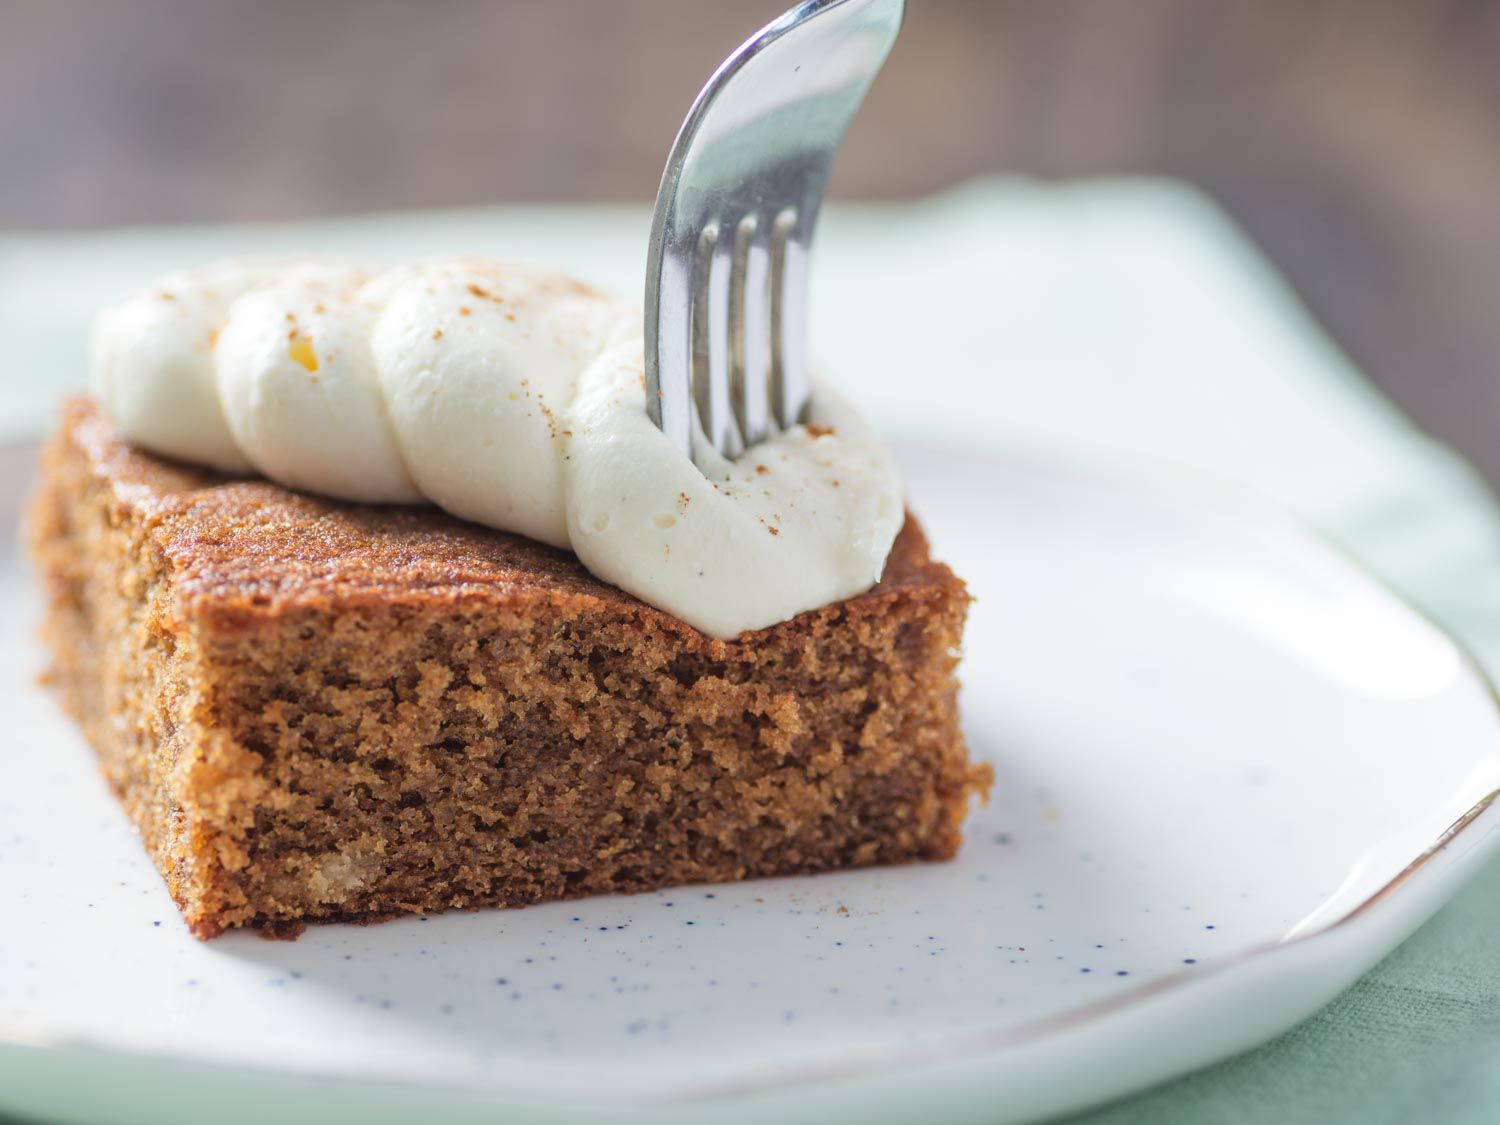 Gingerbread cake and cream cheese frosting